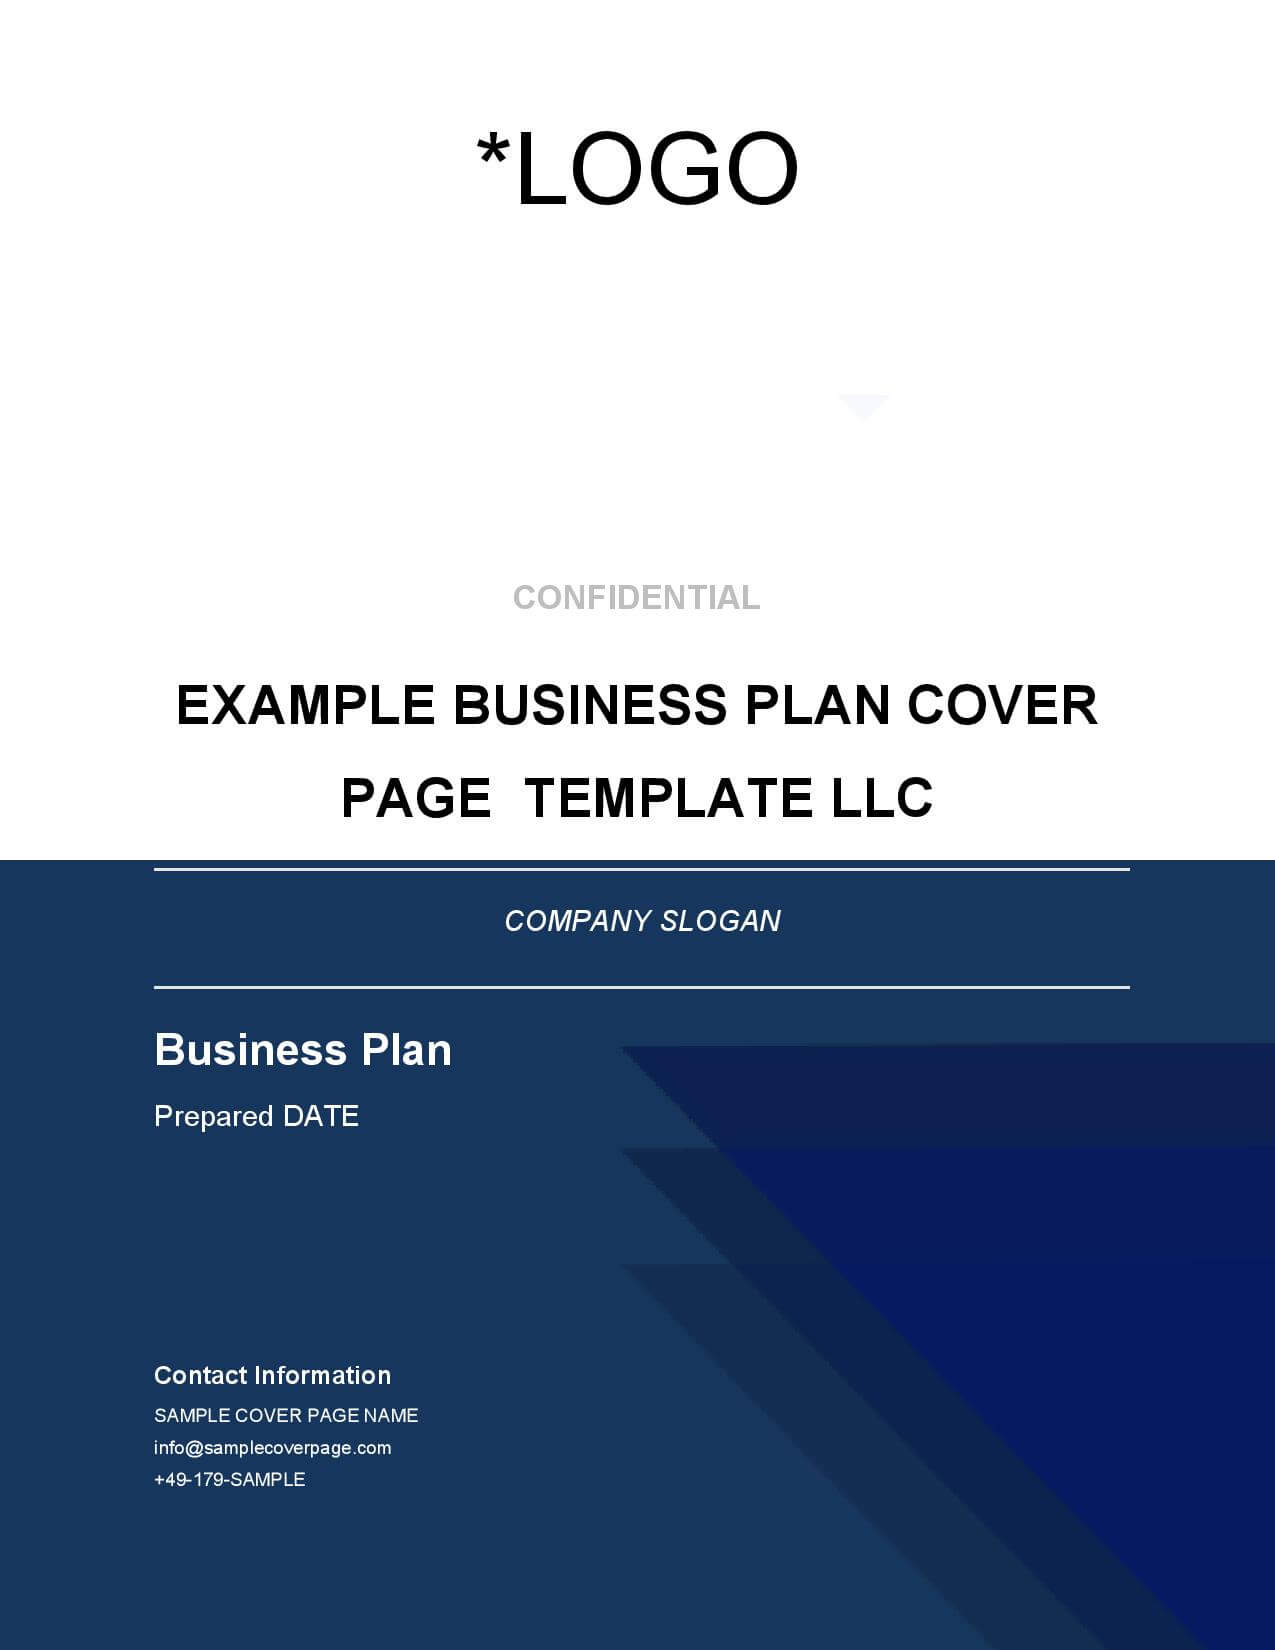 How To Write A Business Plan: The Complete Guide